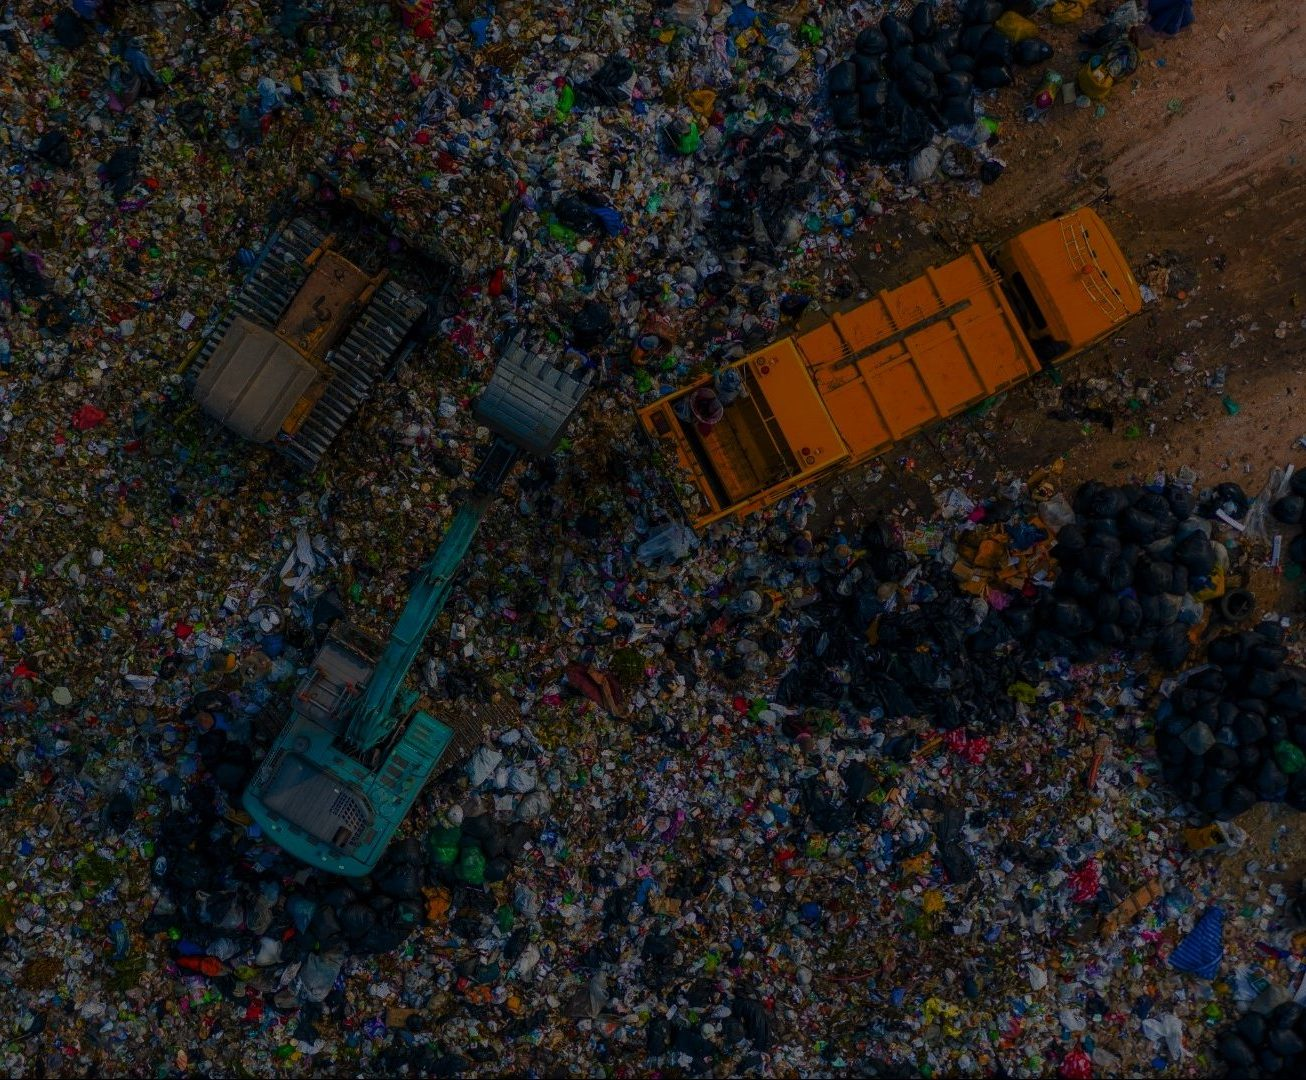 Garbage pile  in trash dump or landfill, Aerial view garbage trucks unload garbage to a landfill,  global warming.